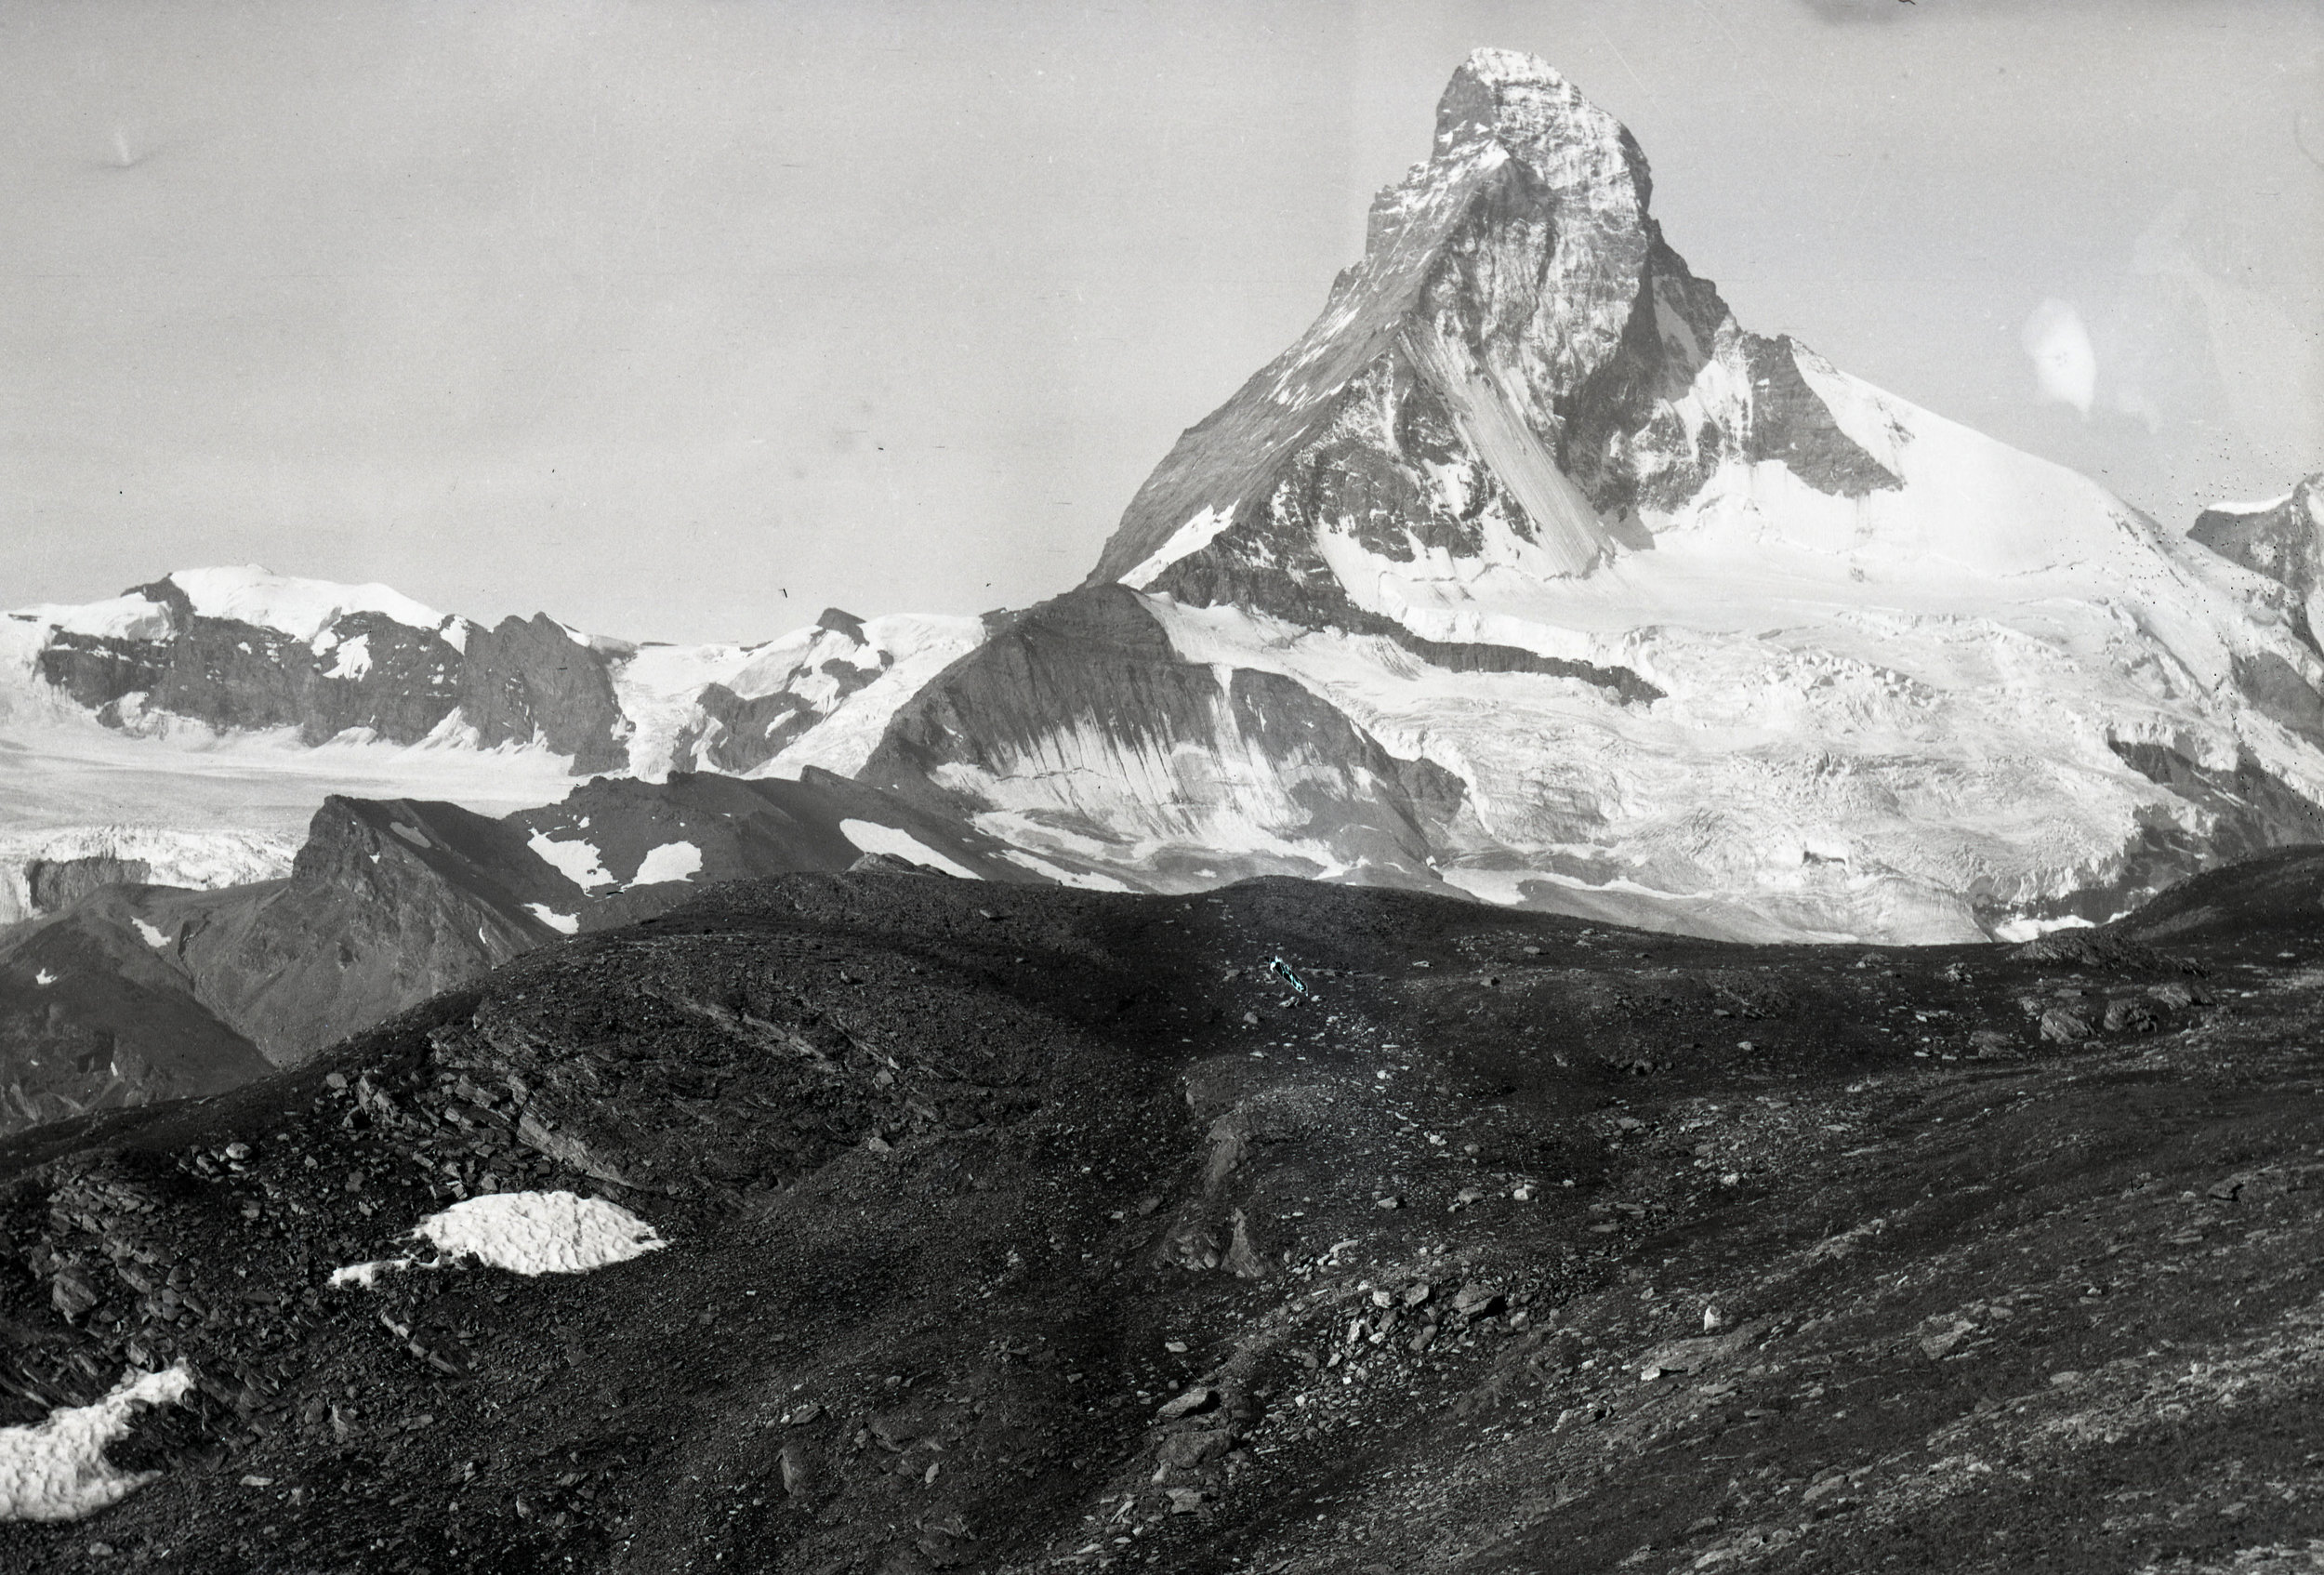 The Matterhorn, photographed from the North